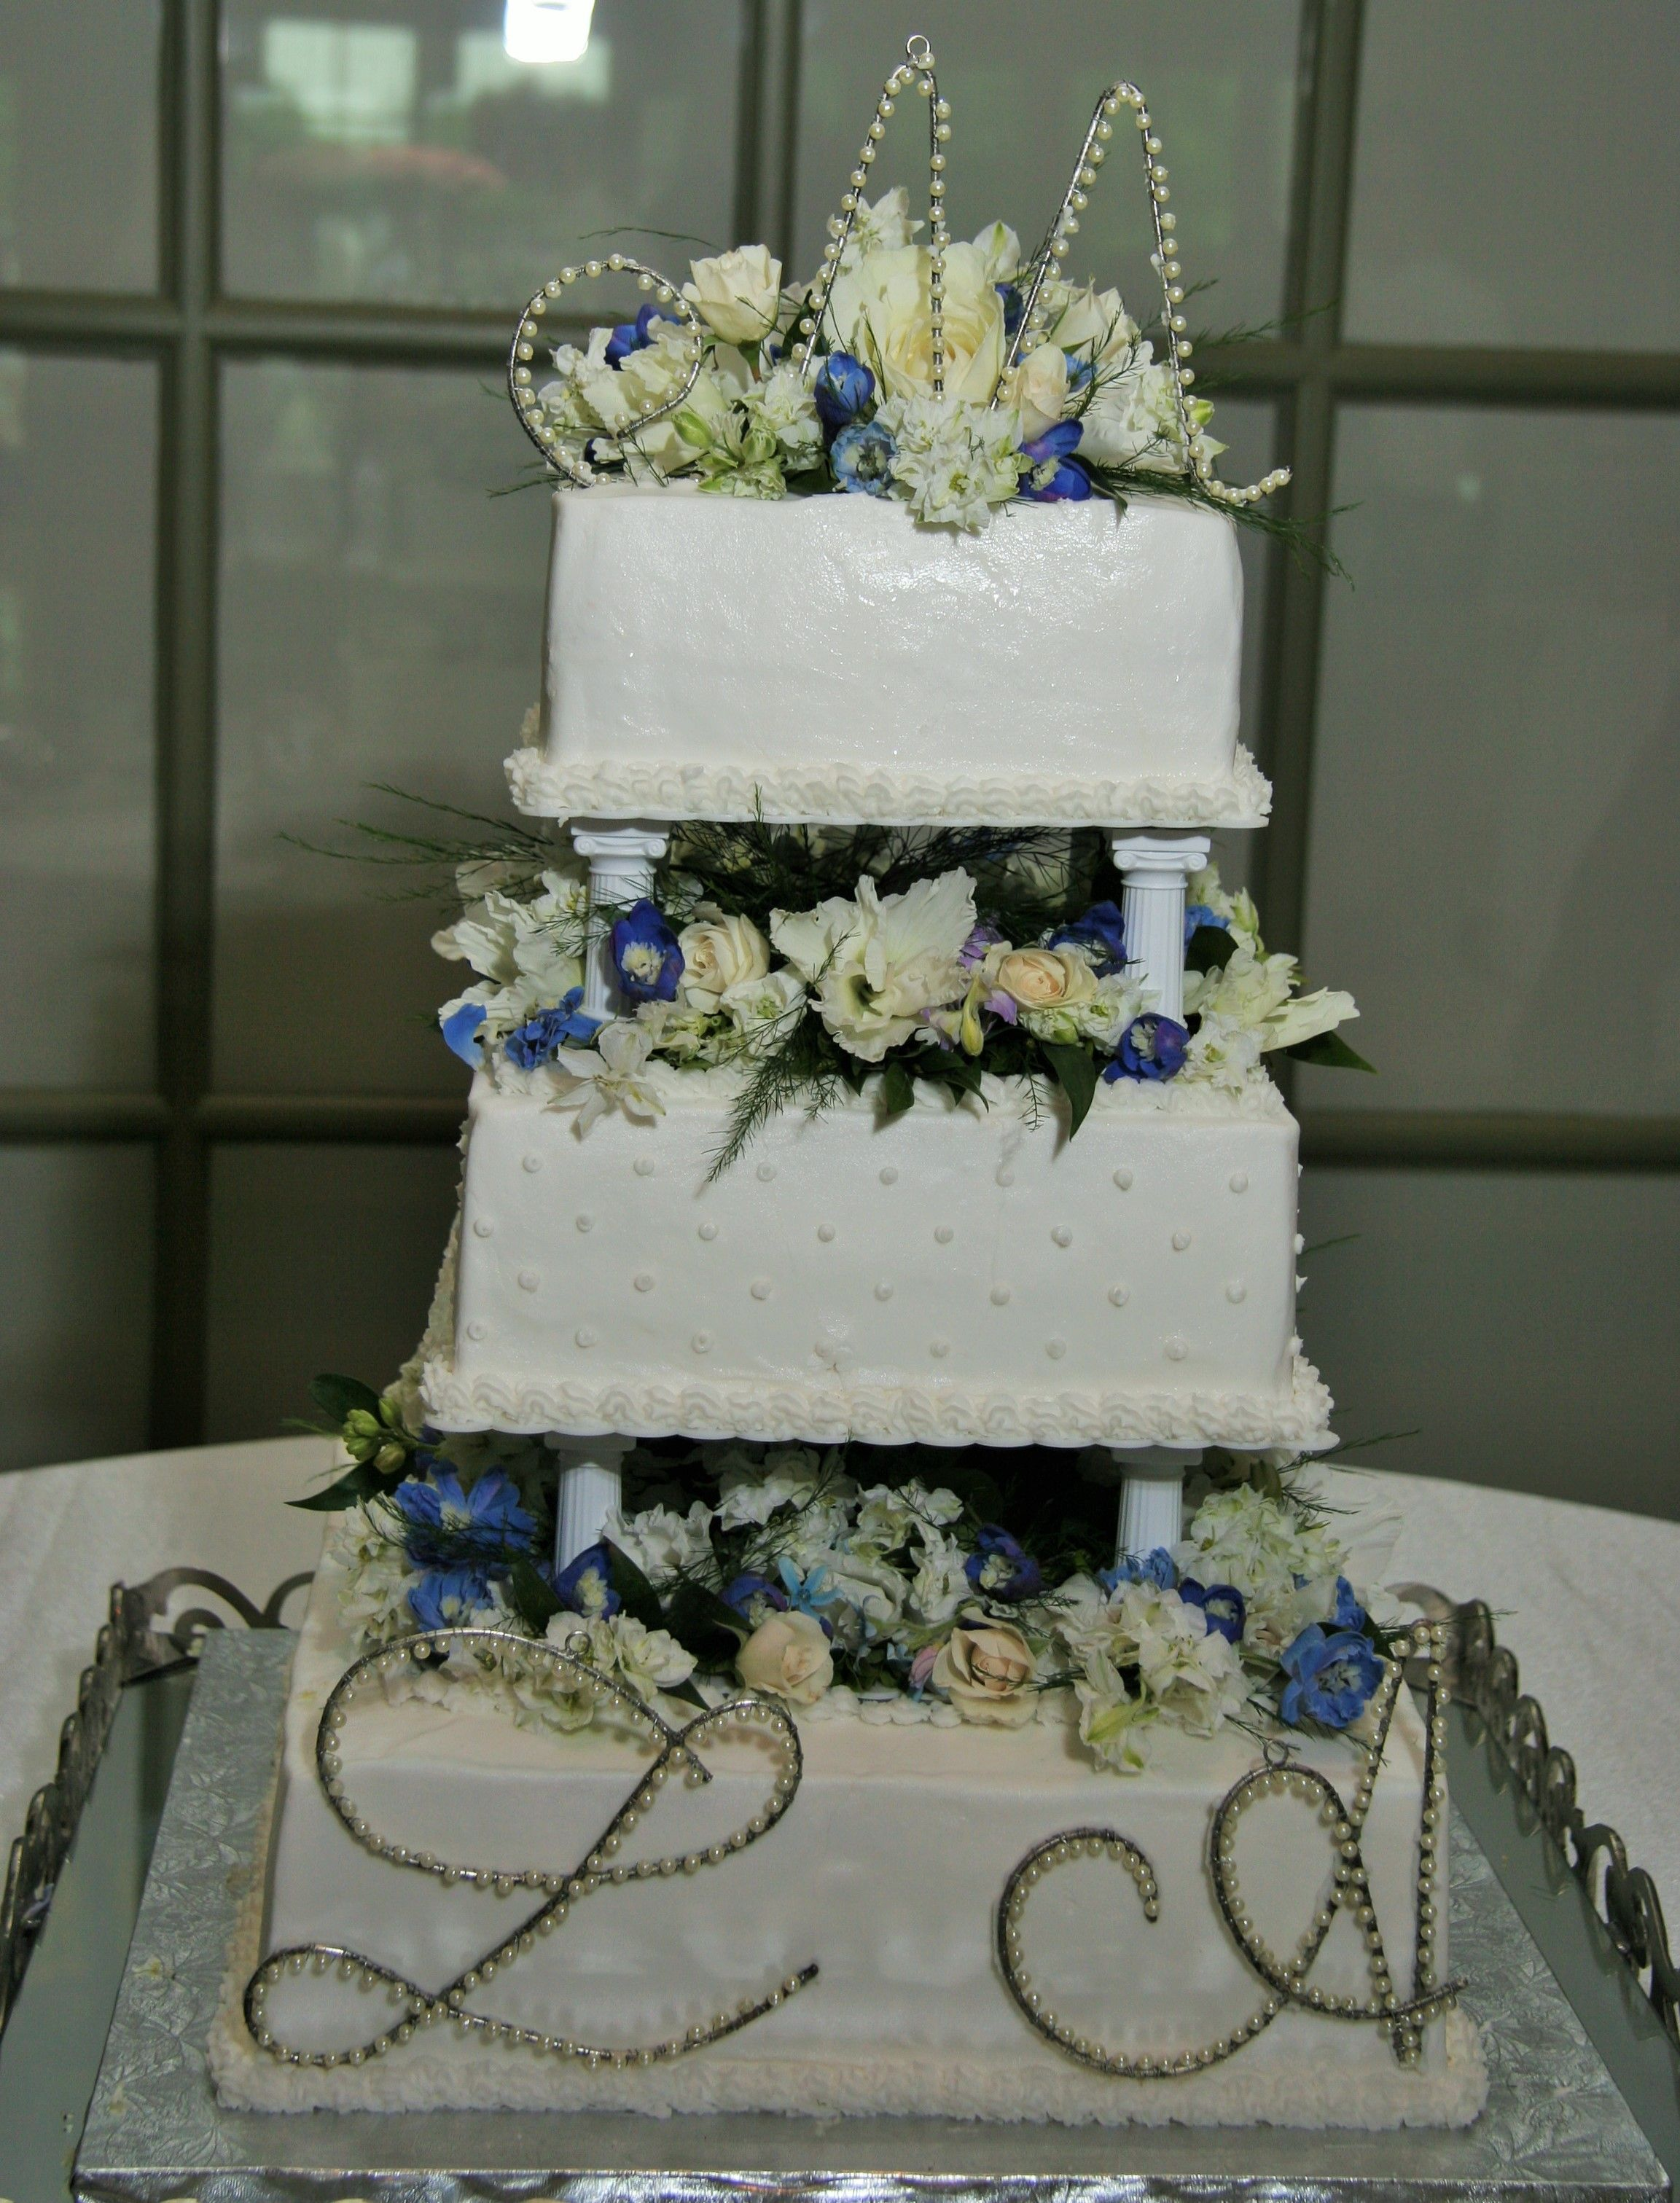 3 Tier Square Wedding Cake with Columns and Pearl Initials Cakes